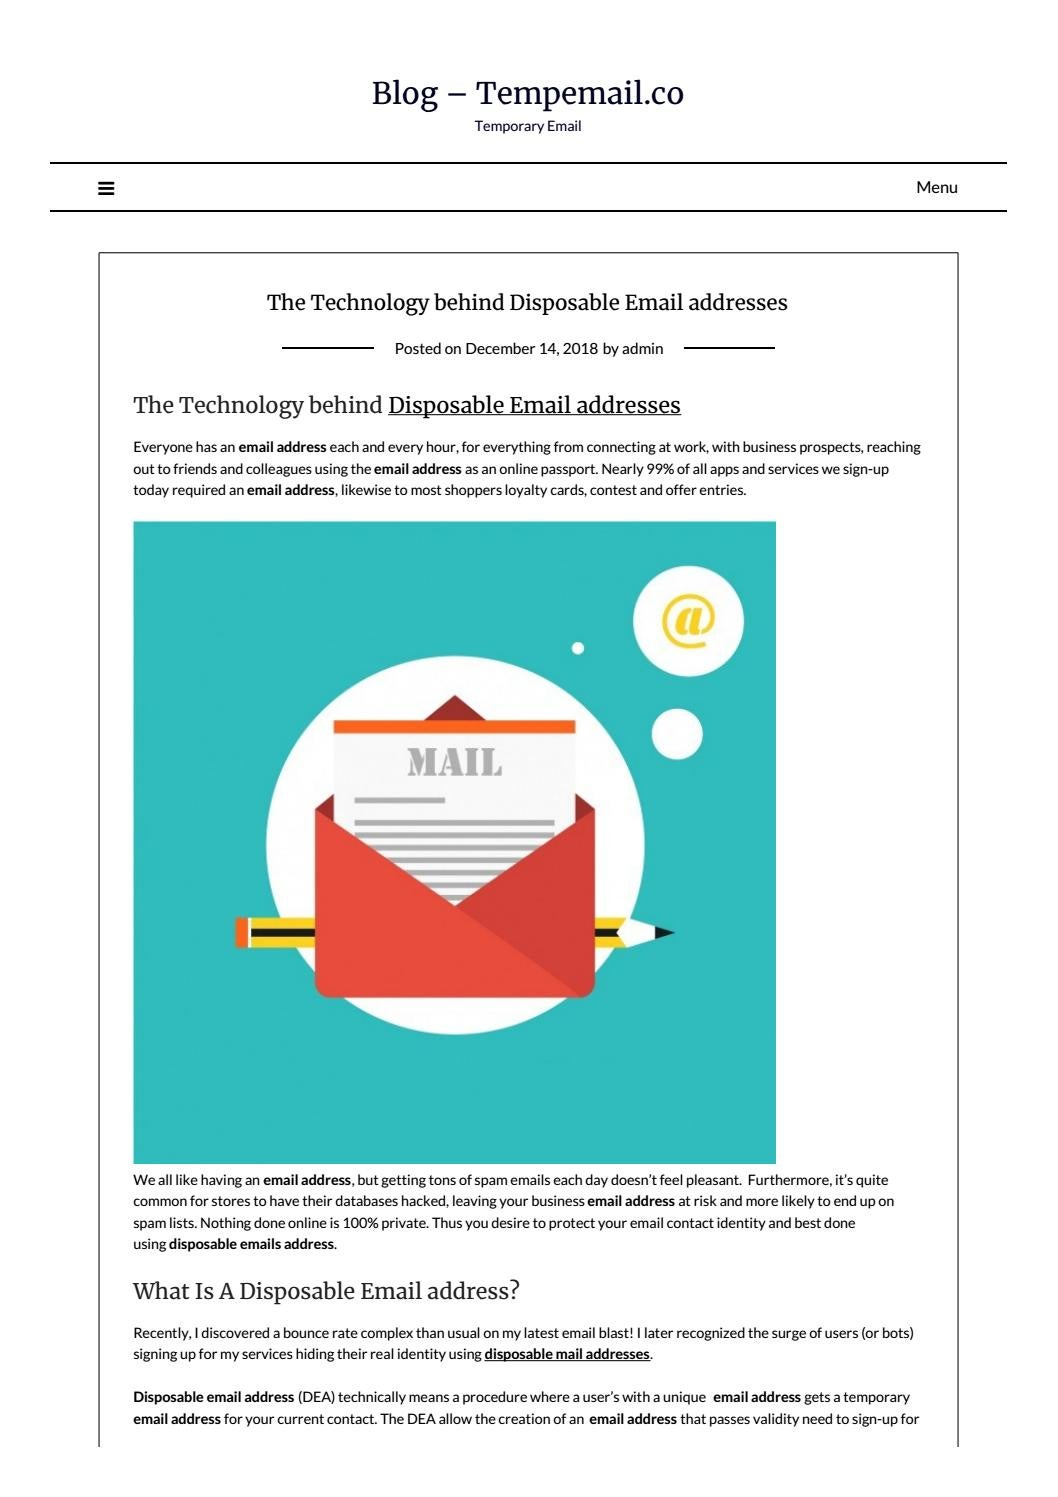 The Technology behind Disposable Email addresses by